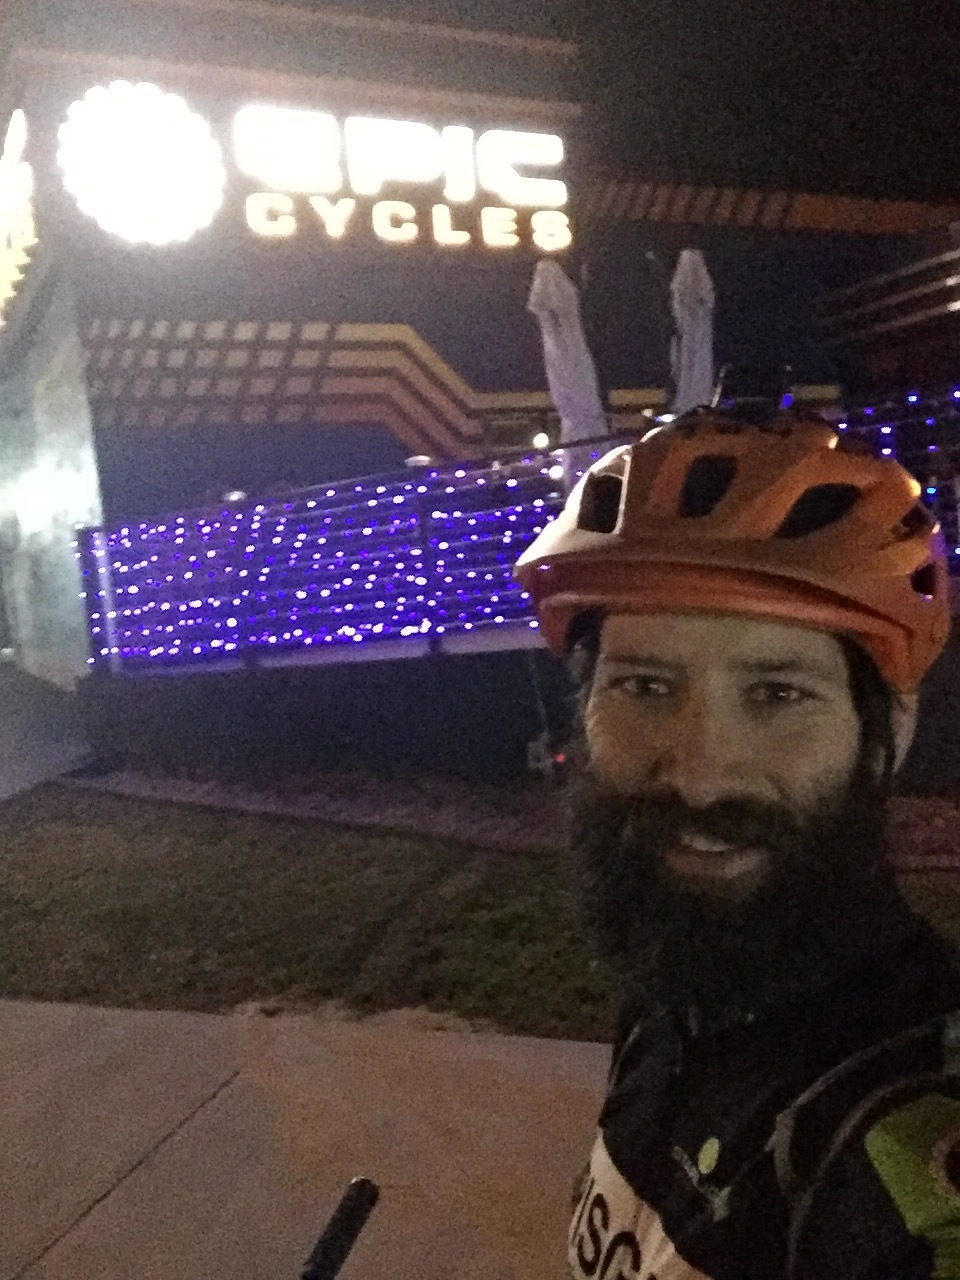 Epic Cycles, Claremont Florida, Check Point 3 around 9pm.